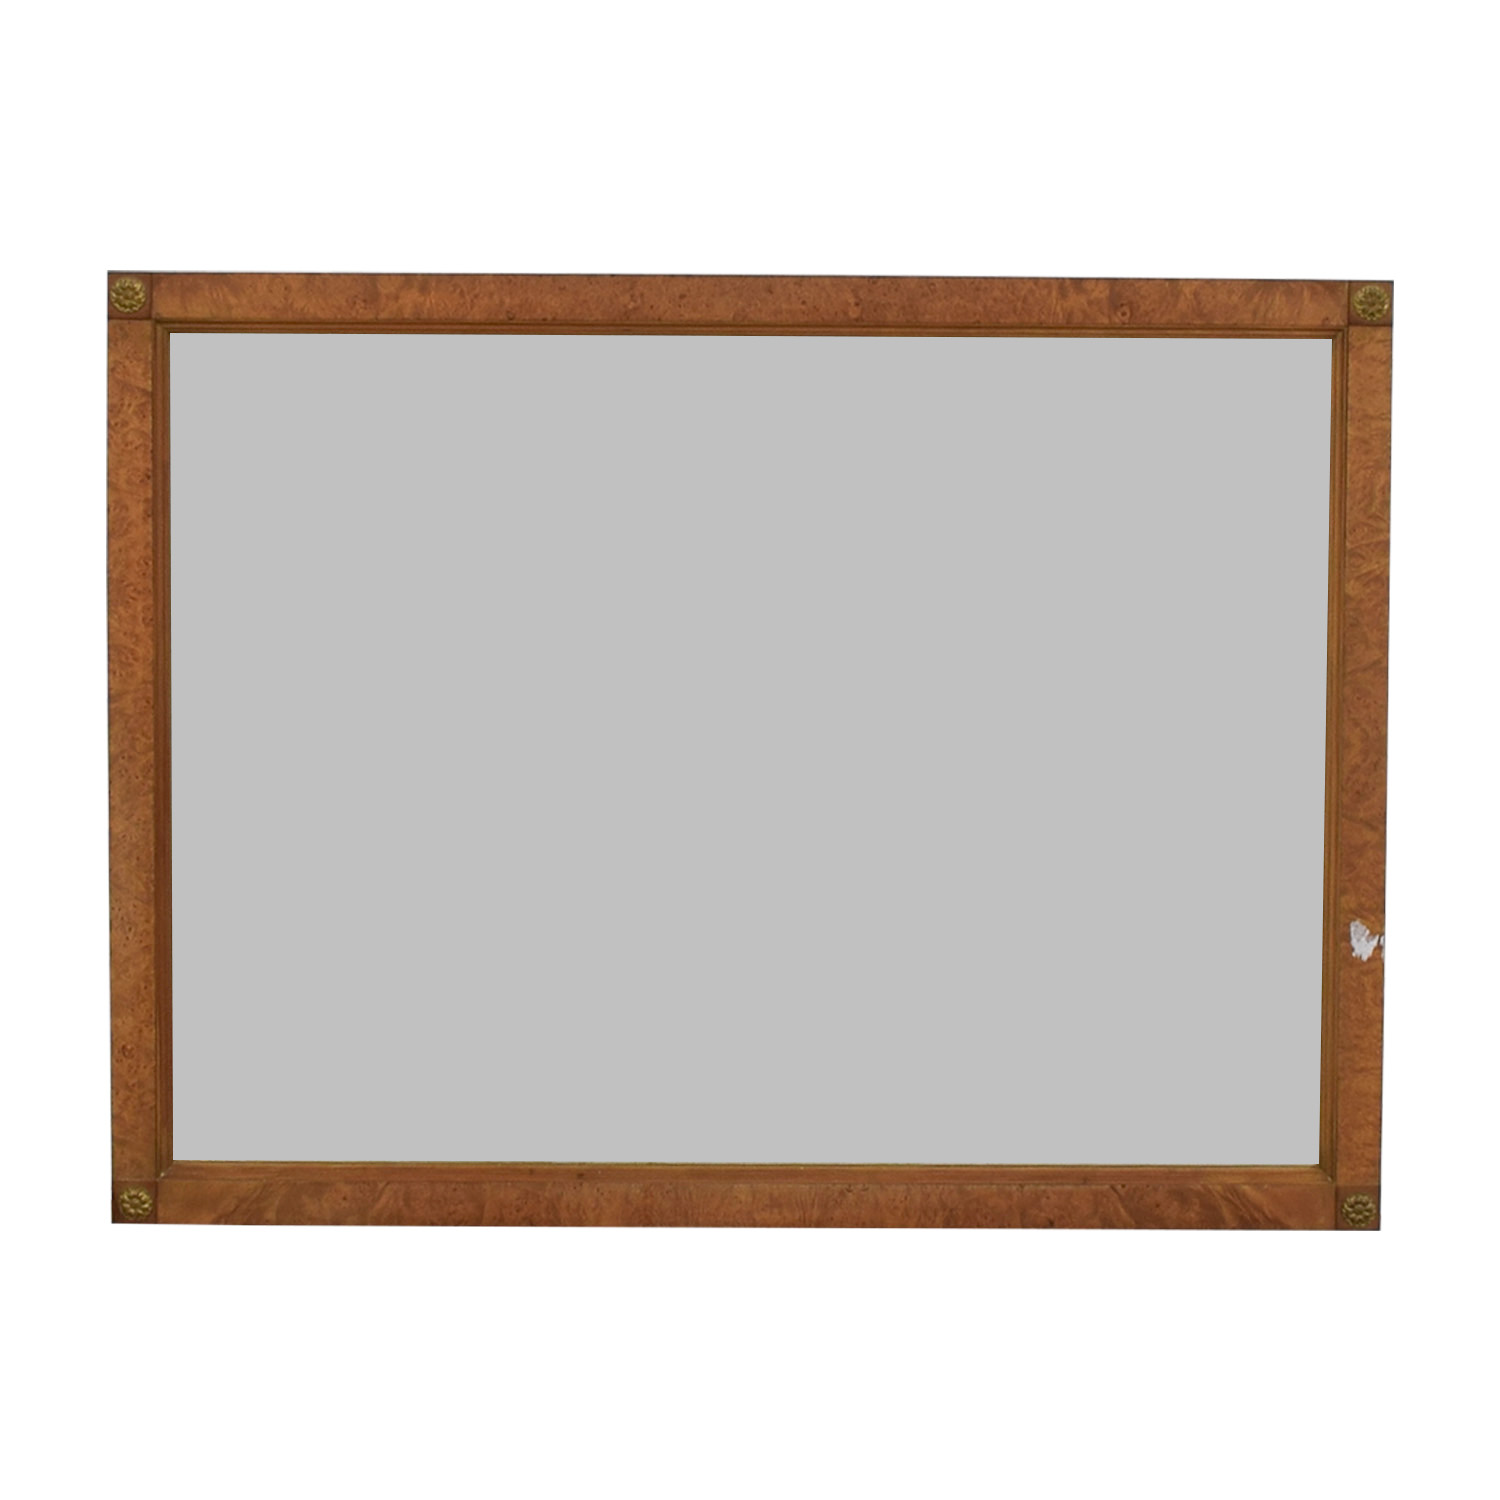 Carmel Frame with Medallion Corner Mirror sale